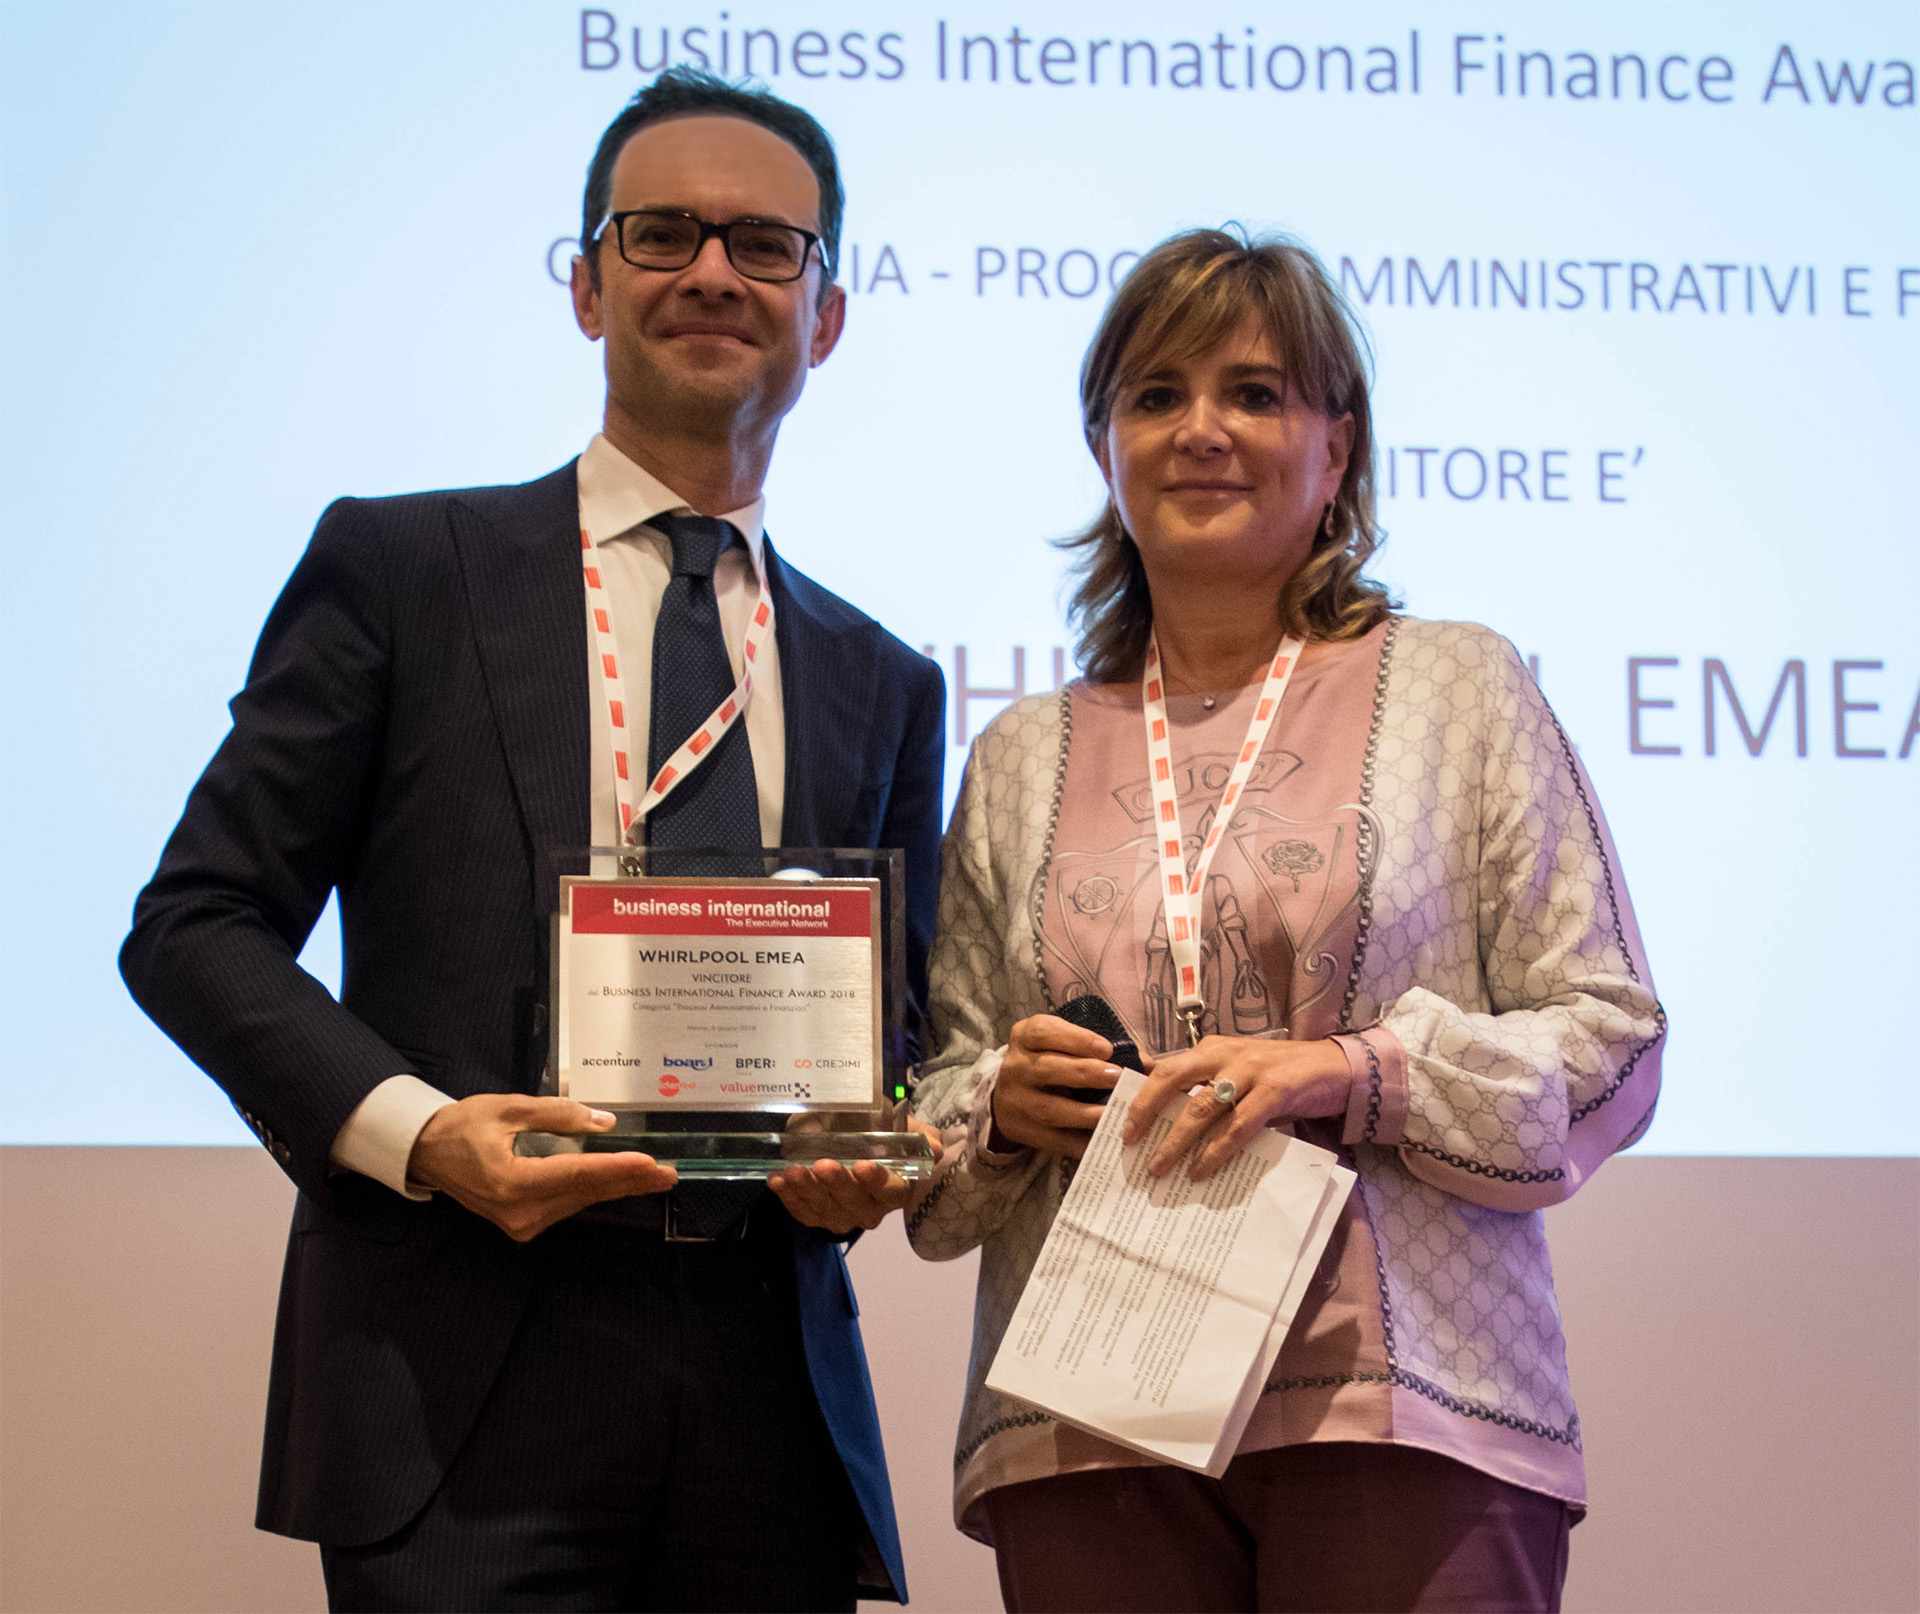 Marco Fossataro - International Business Award